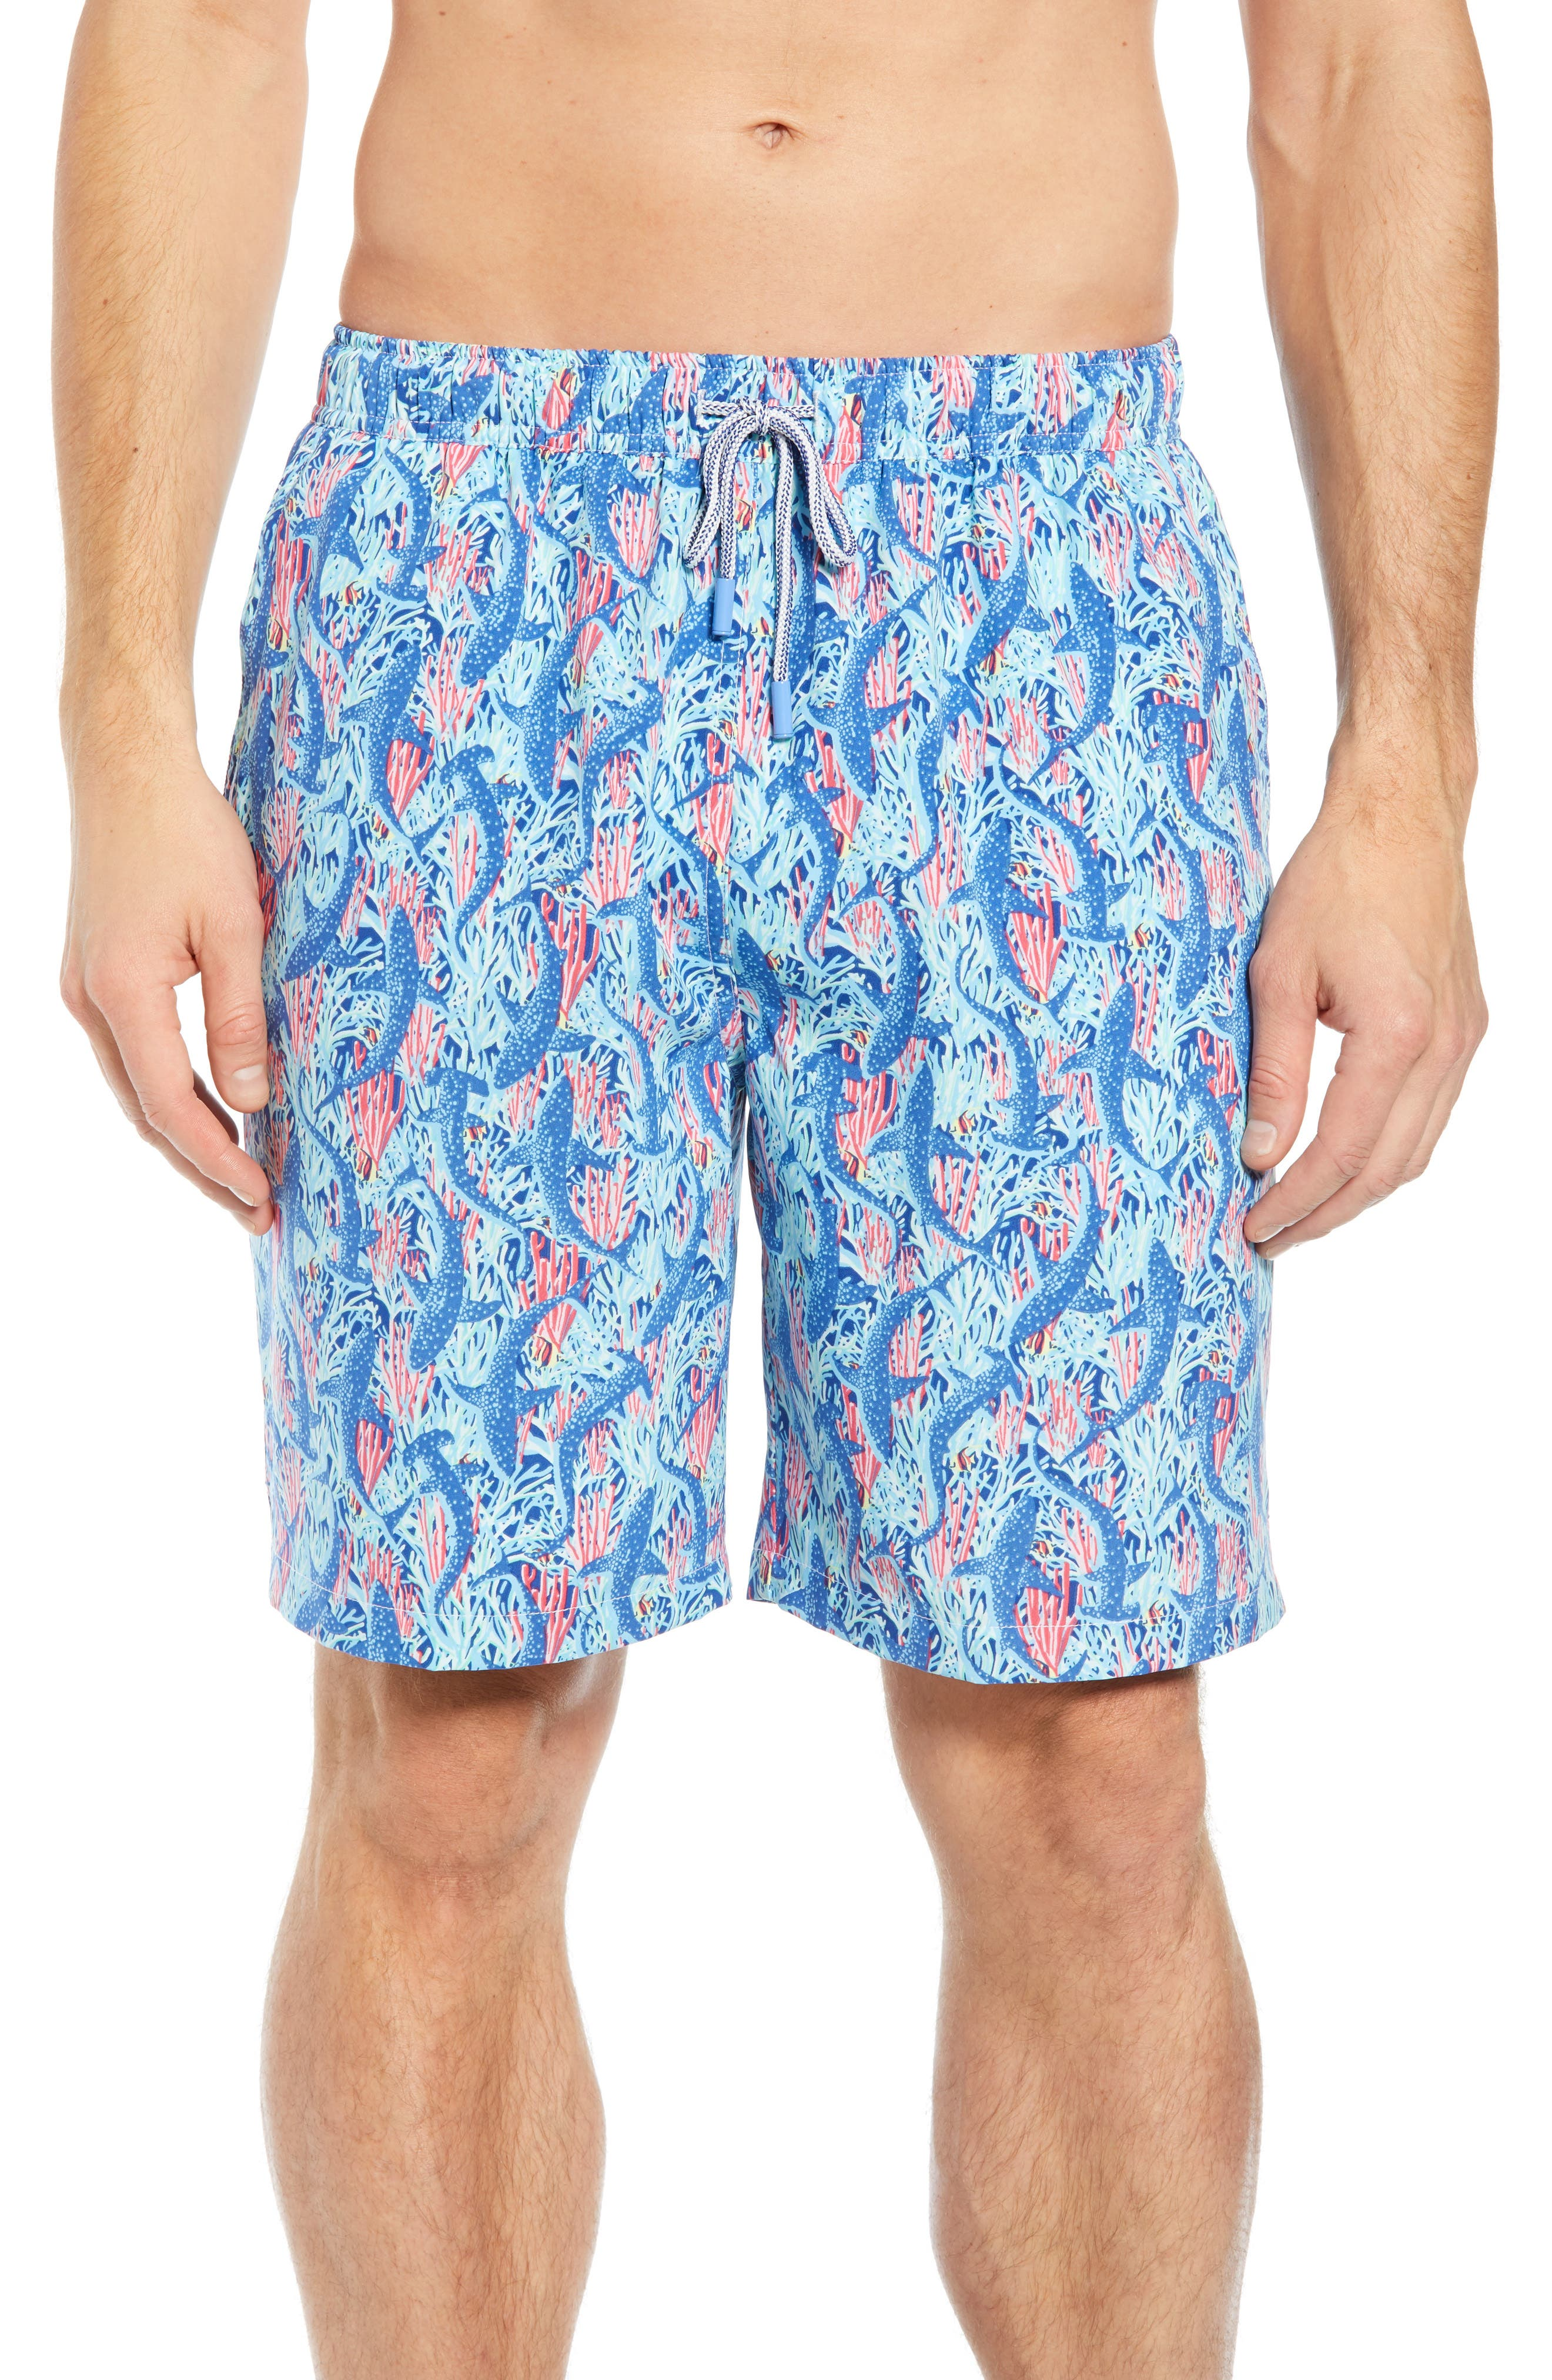 Peter Millar Sharks Swim Trunks, Blue